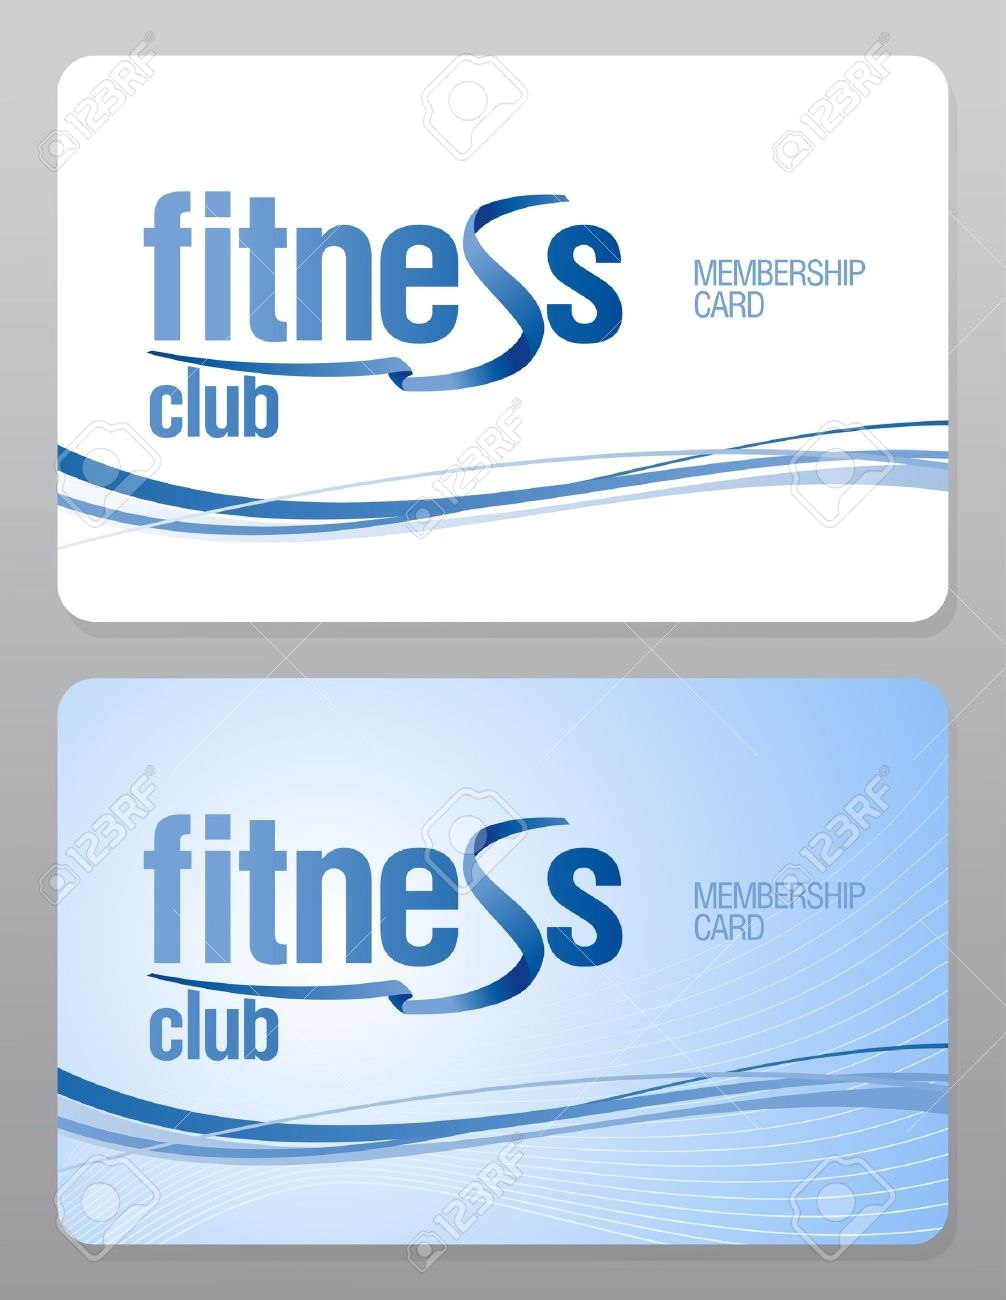 Fitness Club Membership Card Design Template Royalty Free Cliparts Throughout Template For Membership Cards